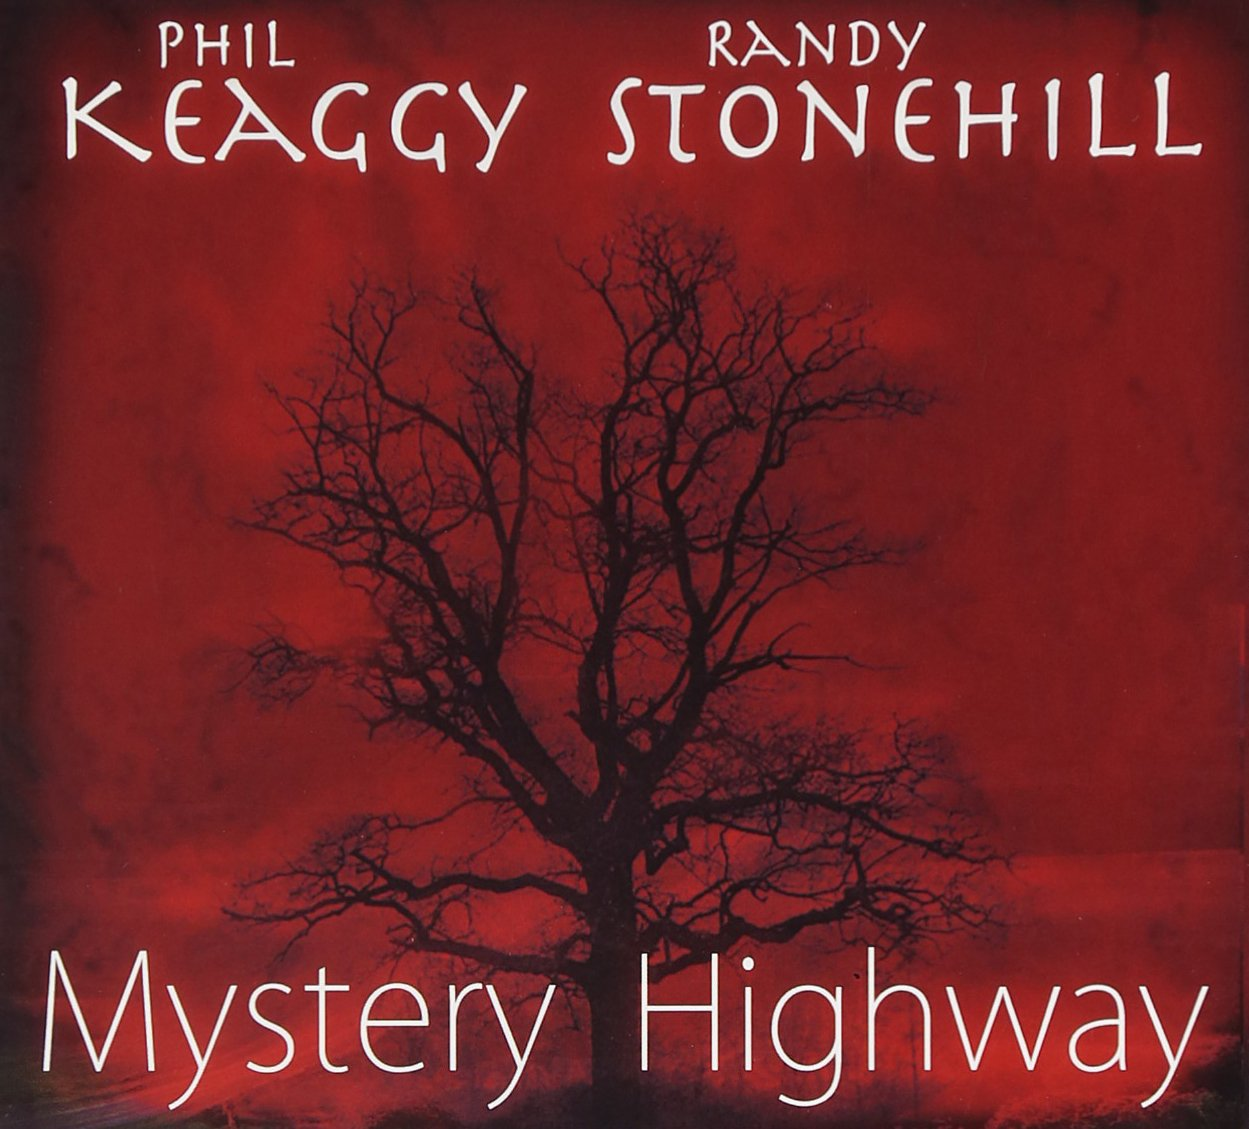 phil keaggy randy stonehill mystery highway com music